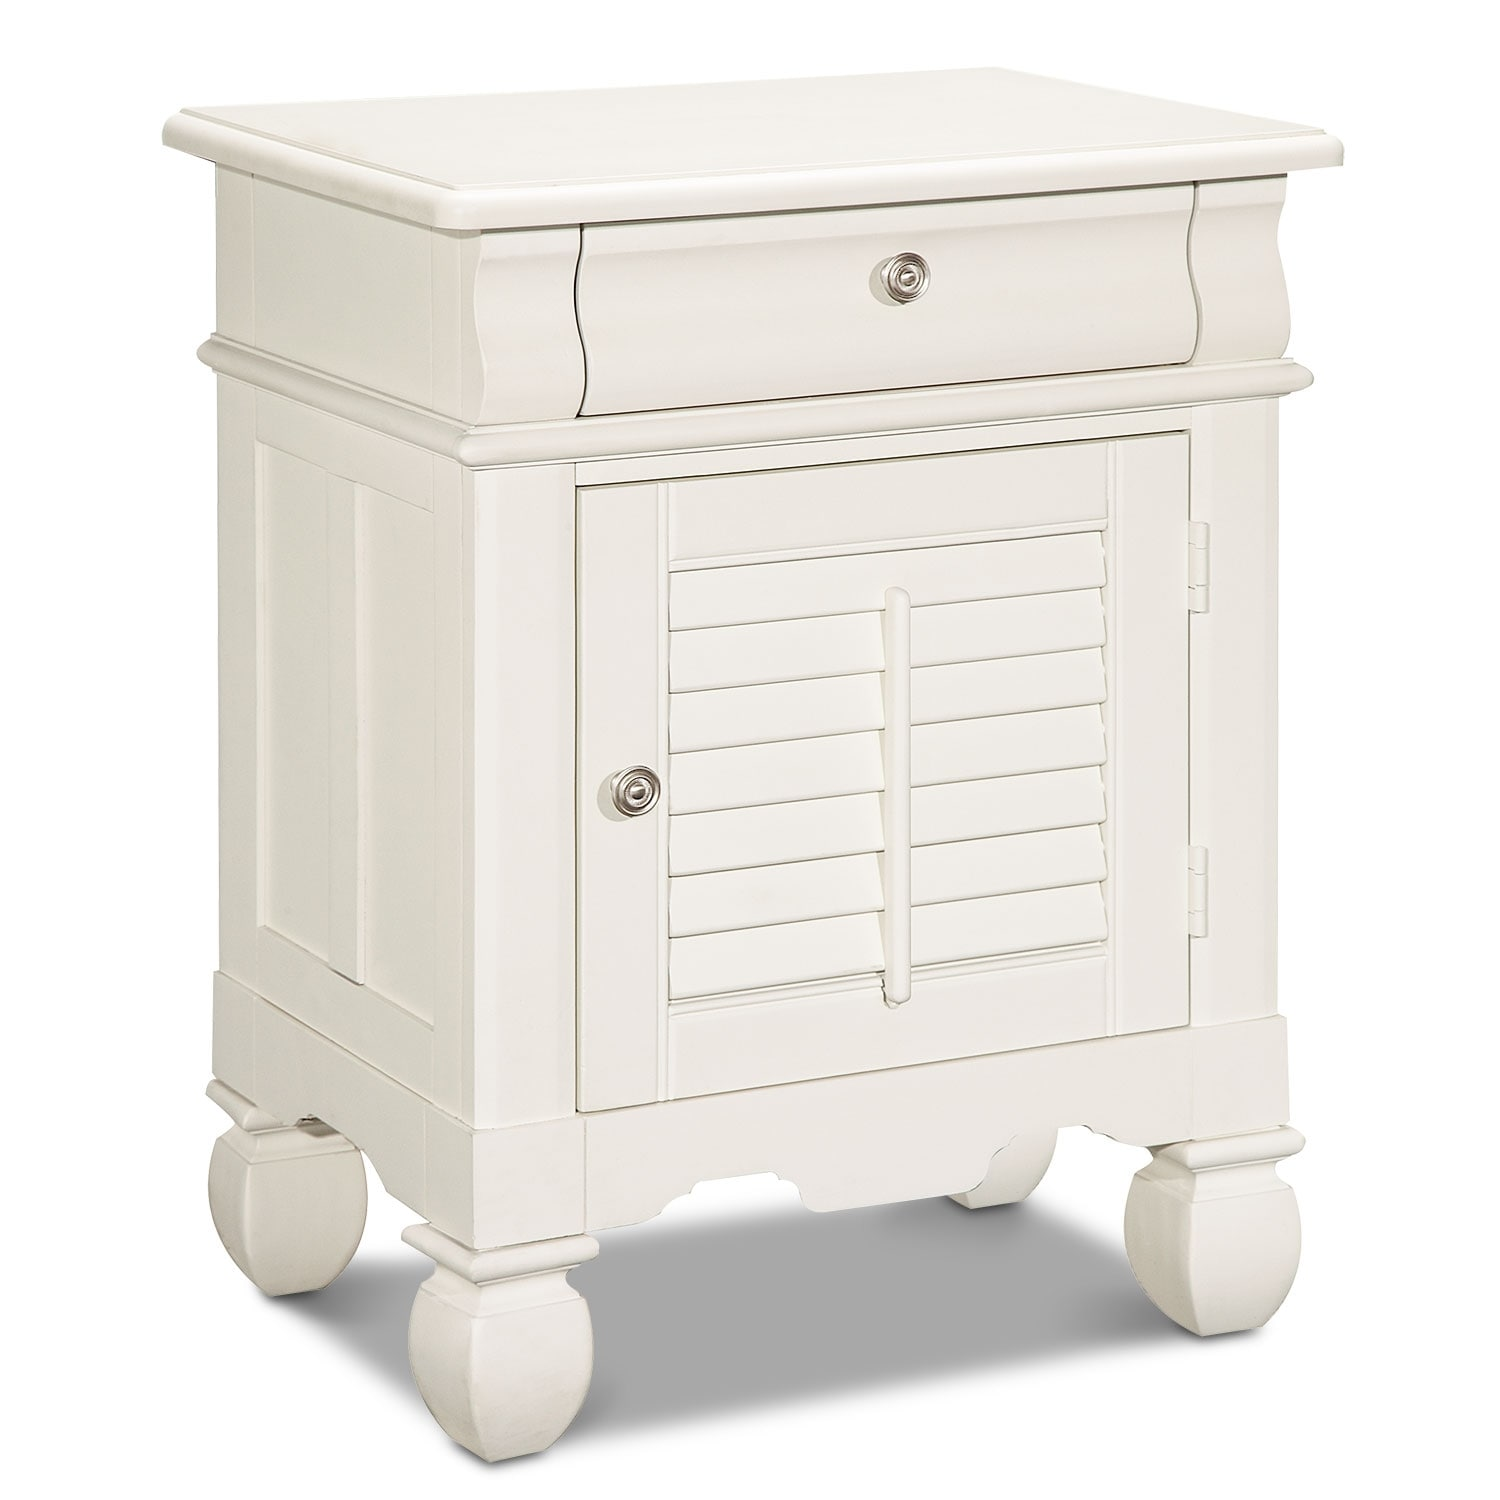 Bedroom Furniture - Plantation Cove Door Nightstand - White